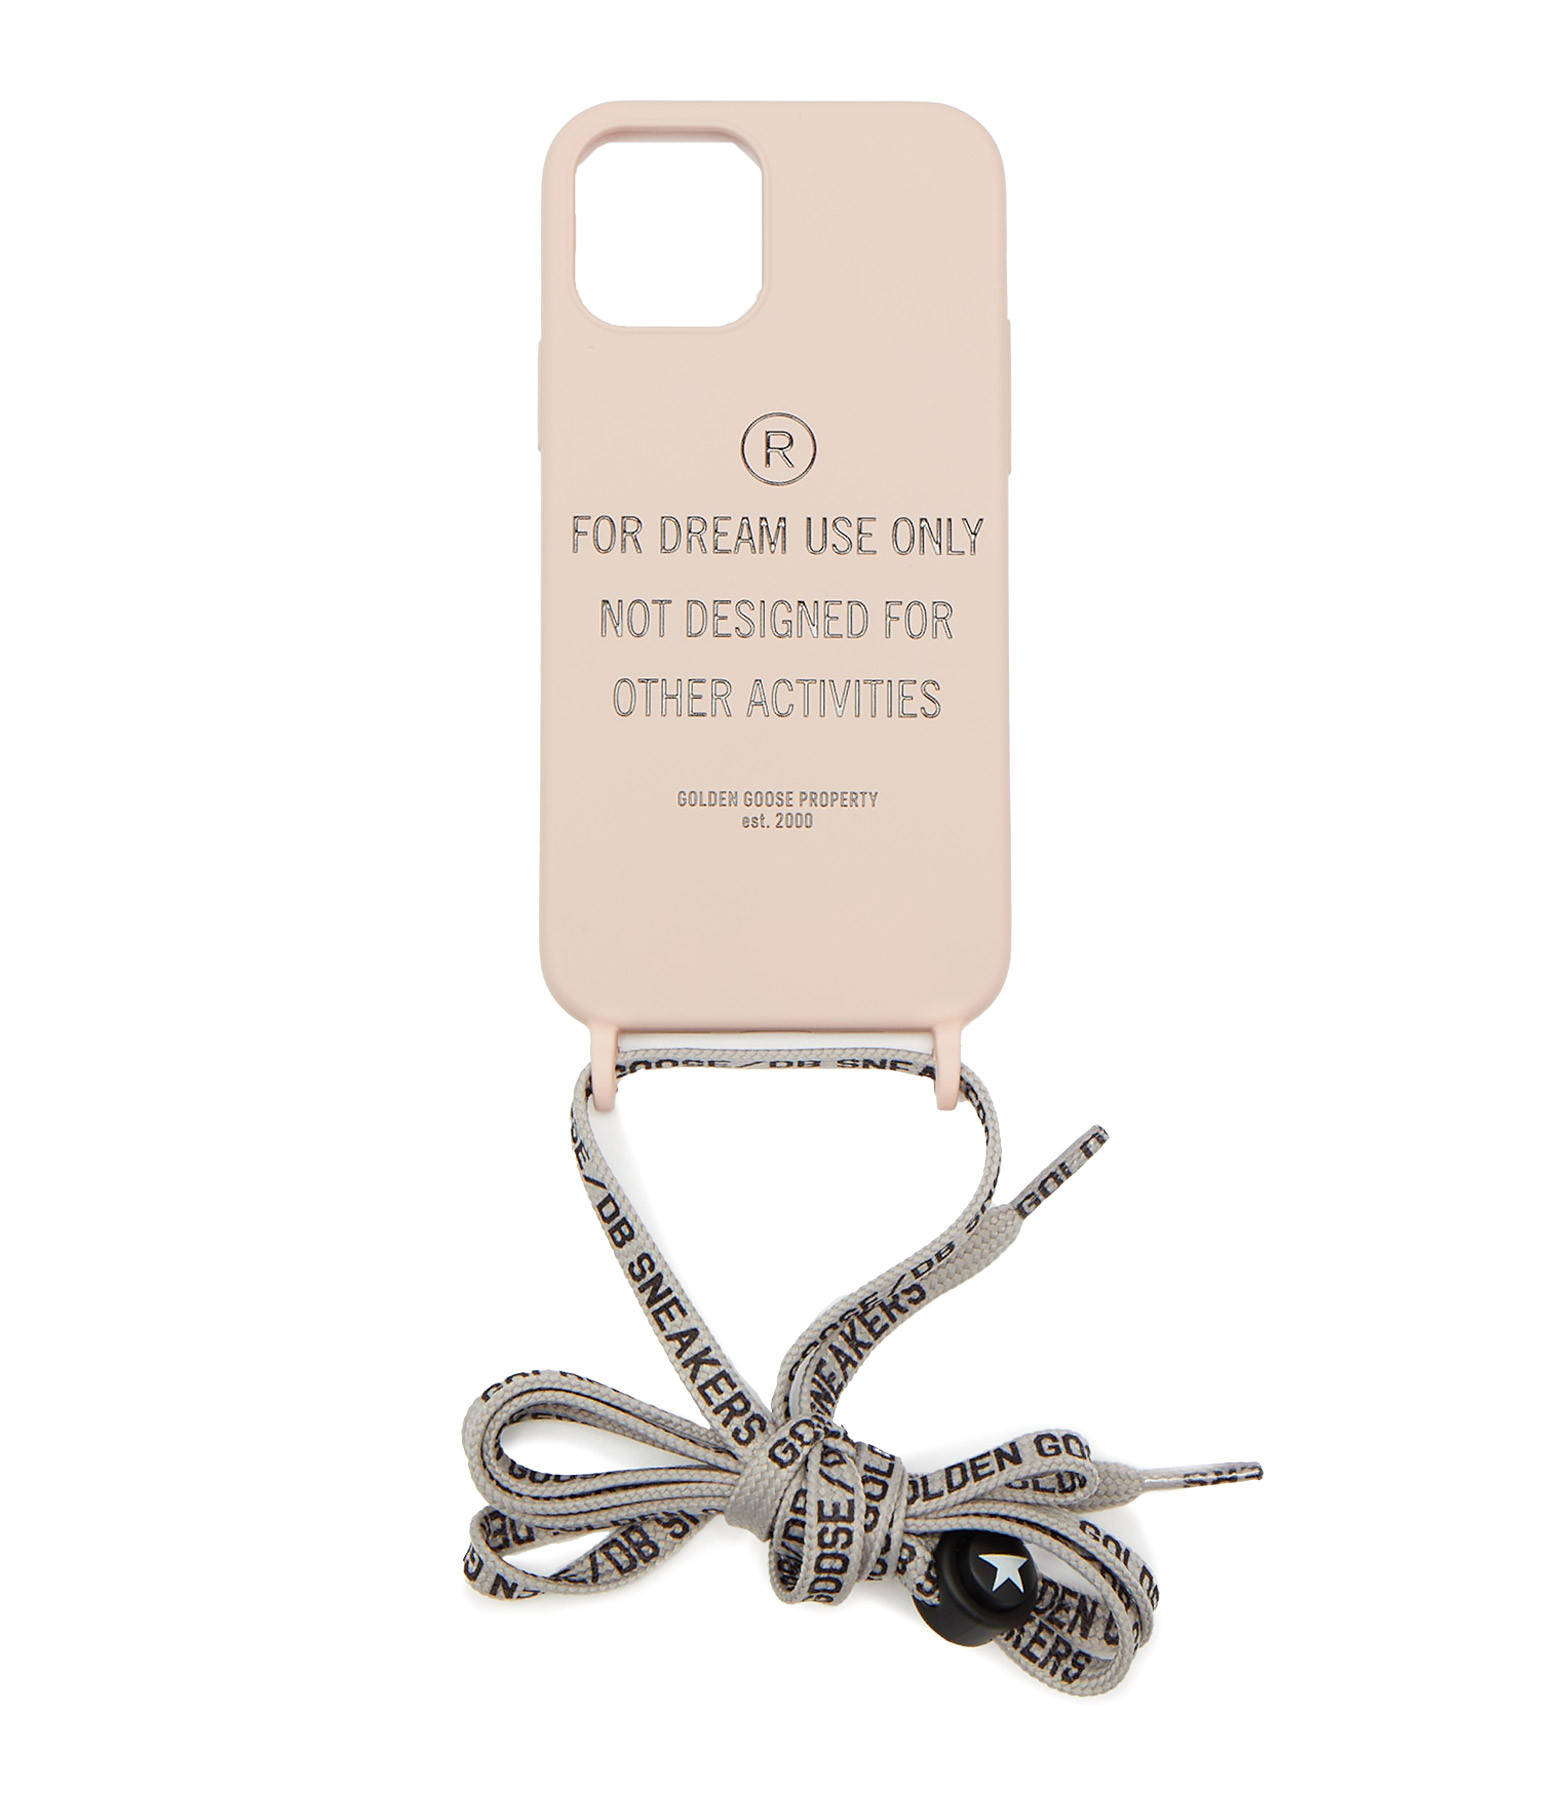 GOLDEN GOOSE - Coque Iphone For Dream Use Only Rose